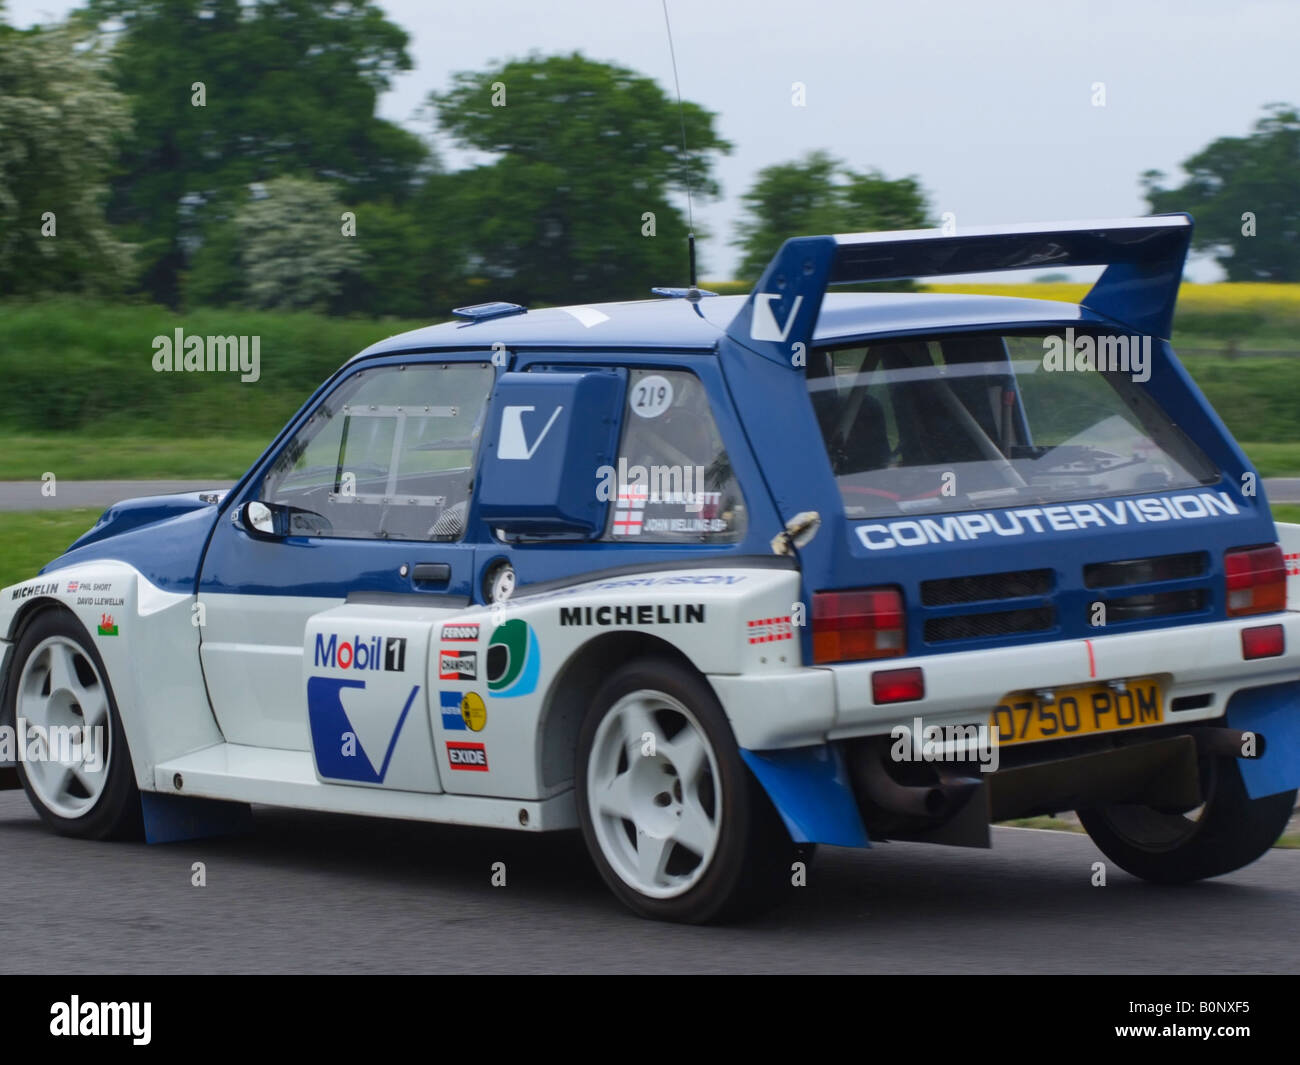 Computervision British Leyland MG Metro 6R4 Historic Rally Car at ...